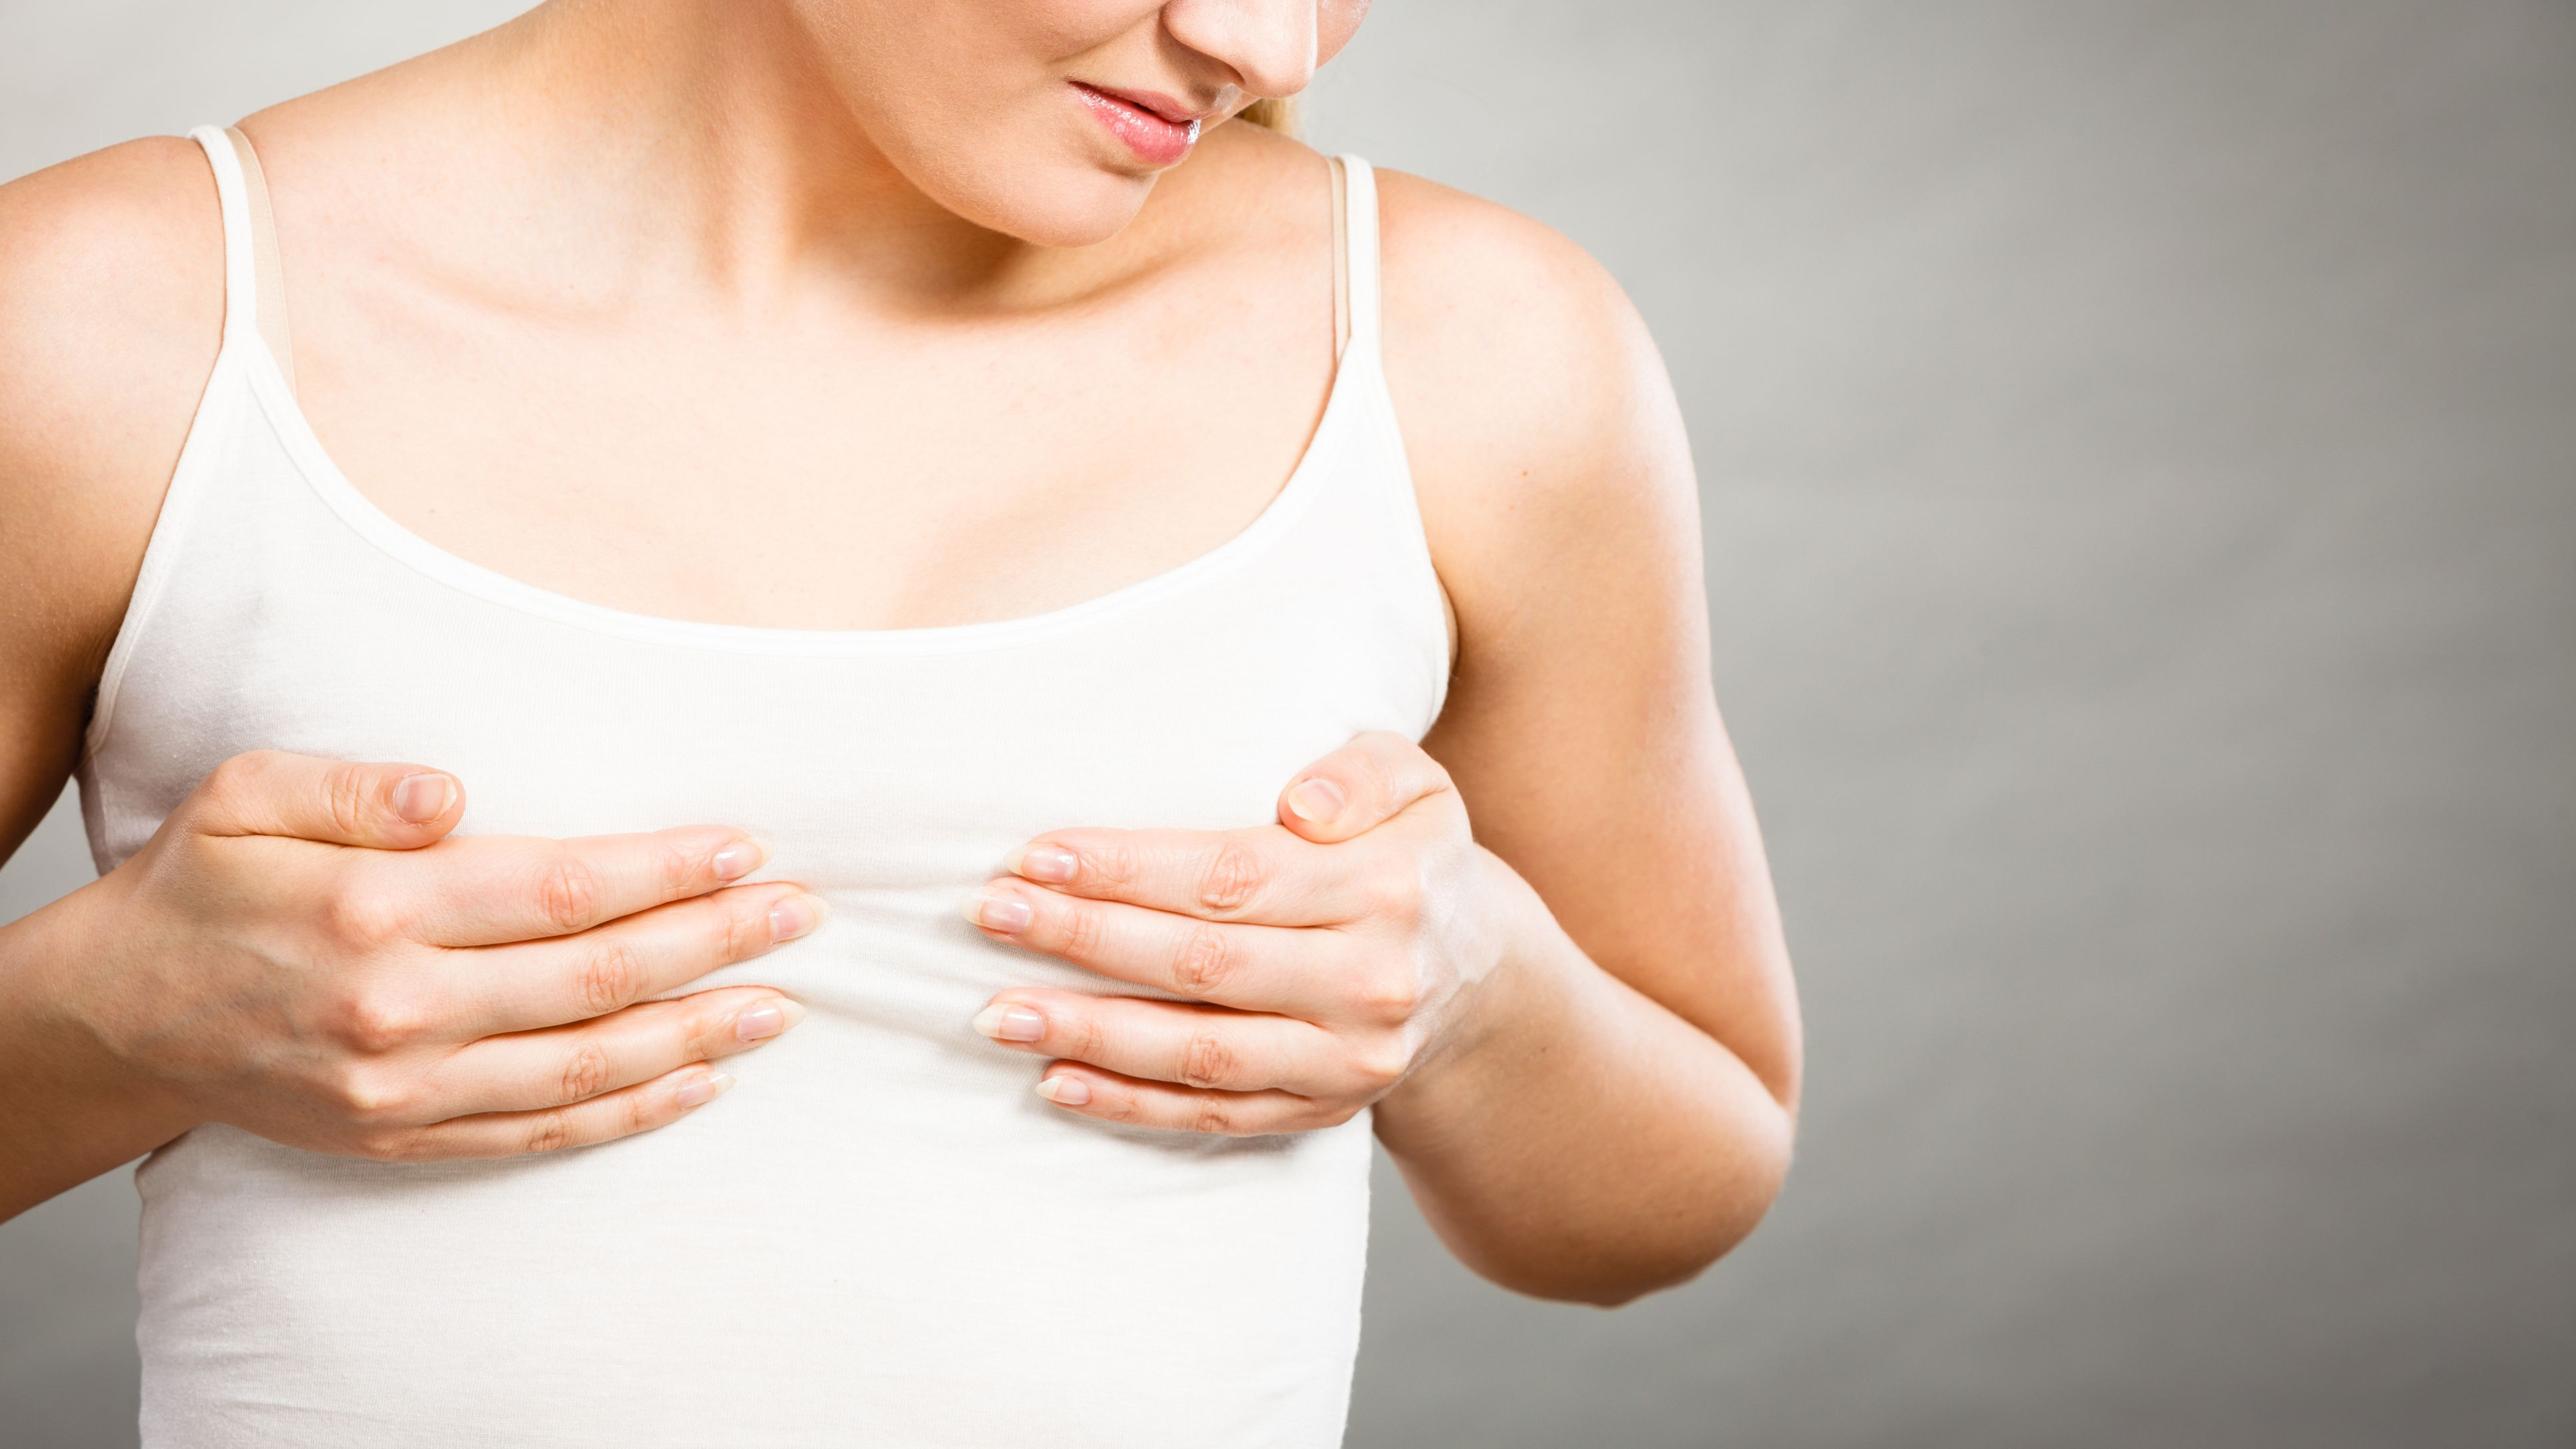 Benign Breast Changes That Mimic Breast Cancer